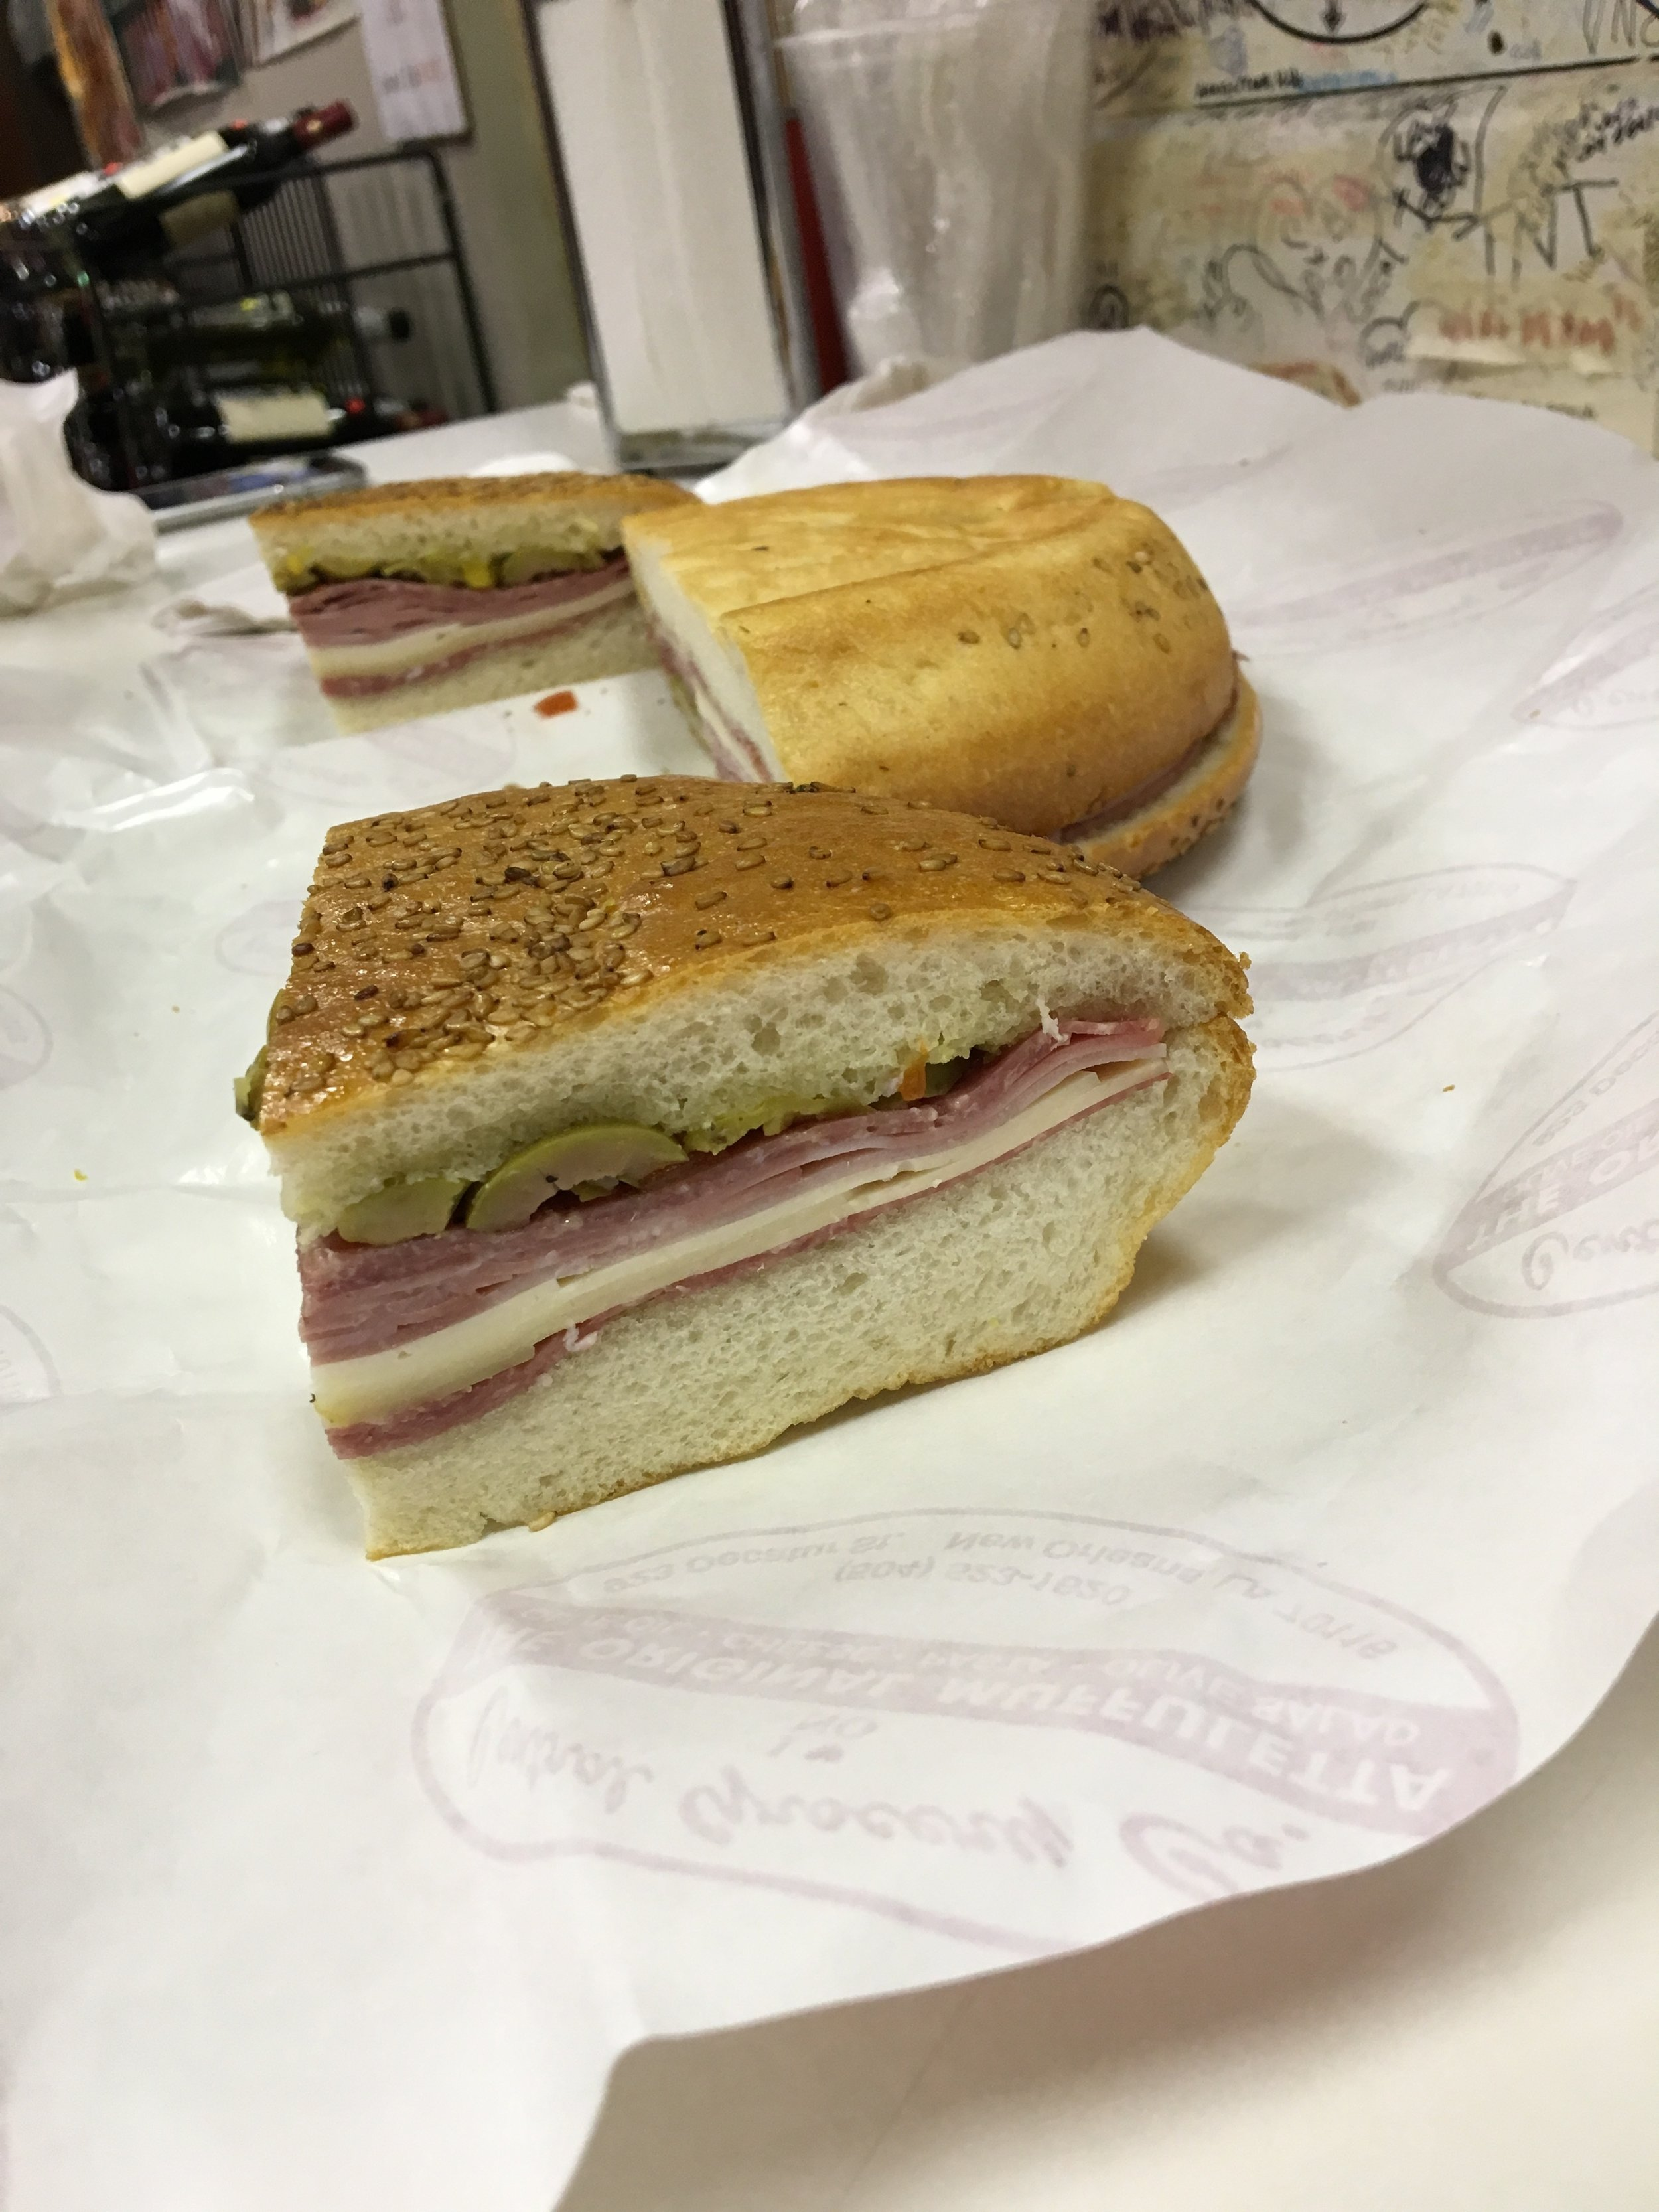 """Full 10"""" Round Muffuletta - they cut into quarter portions. Love how the sesame bread soaks up the olive oil and briny/marinated goodness."""